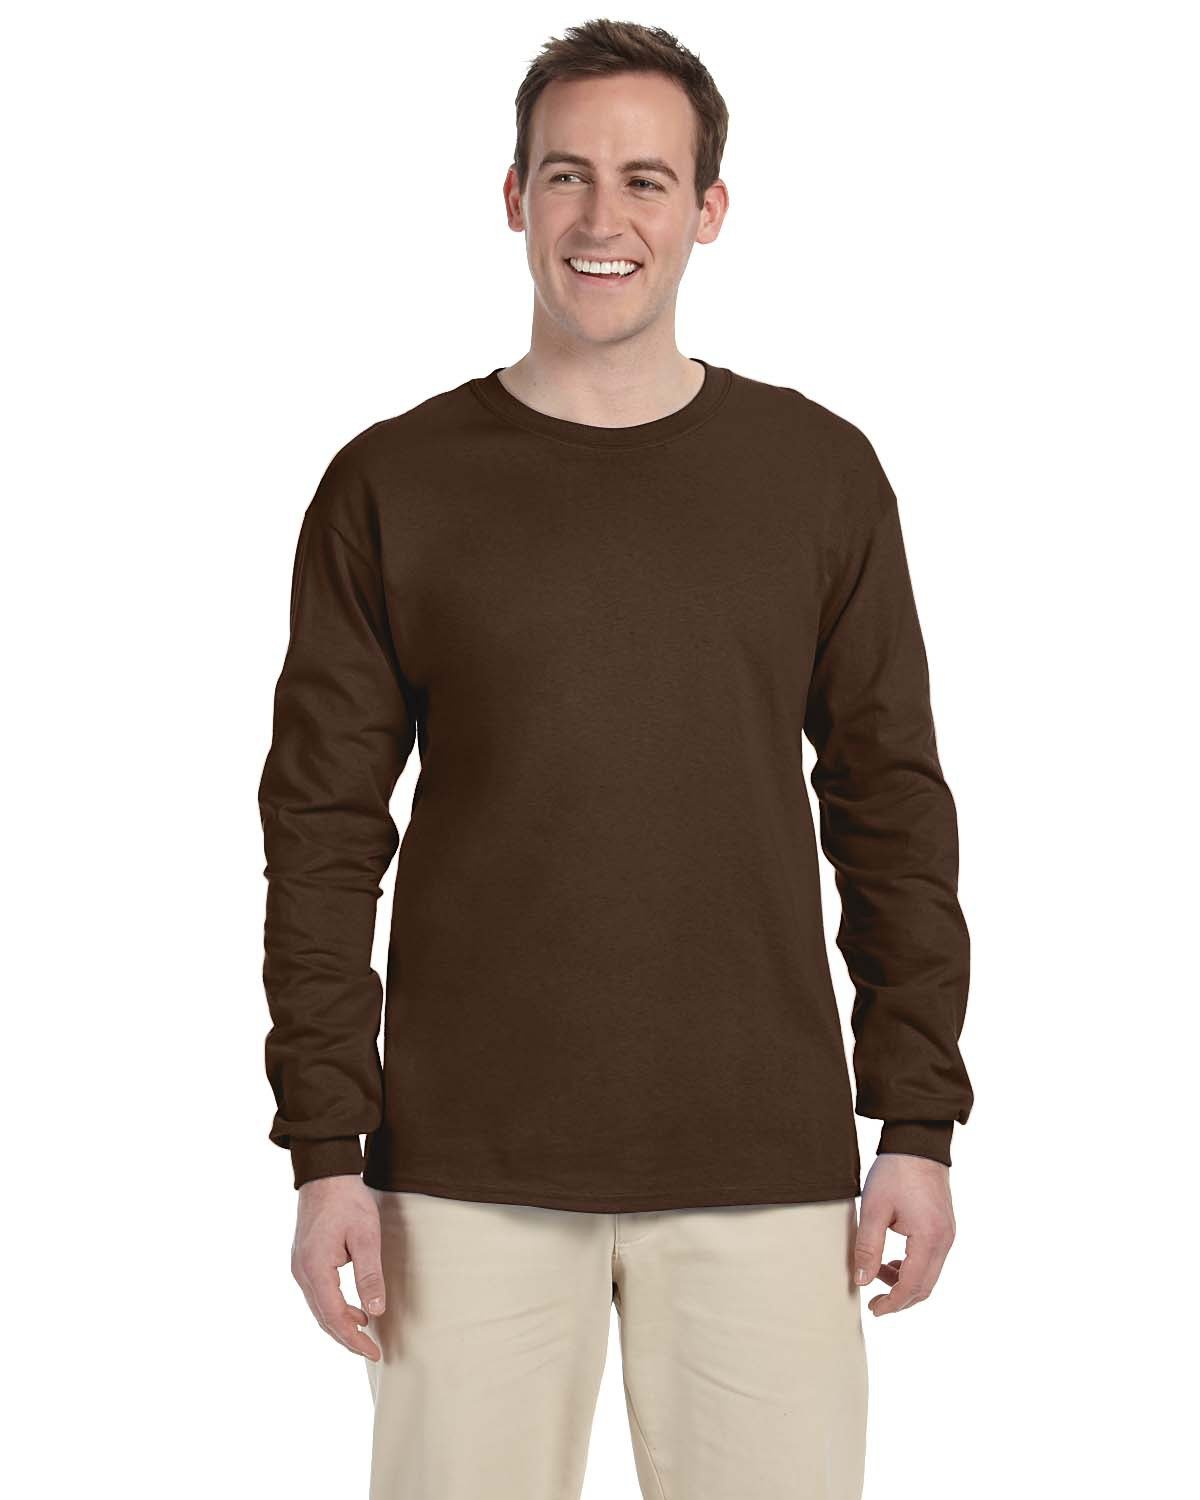 Fruit of the Loom Adult HD Cotton™ Long-Sleeve T-Shirt CHOCOLATE